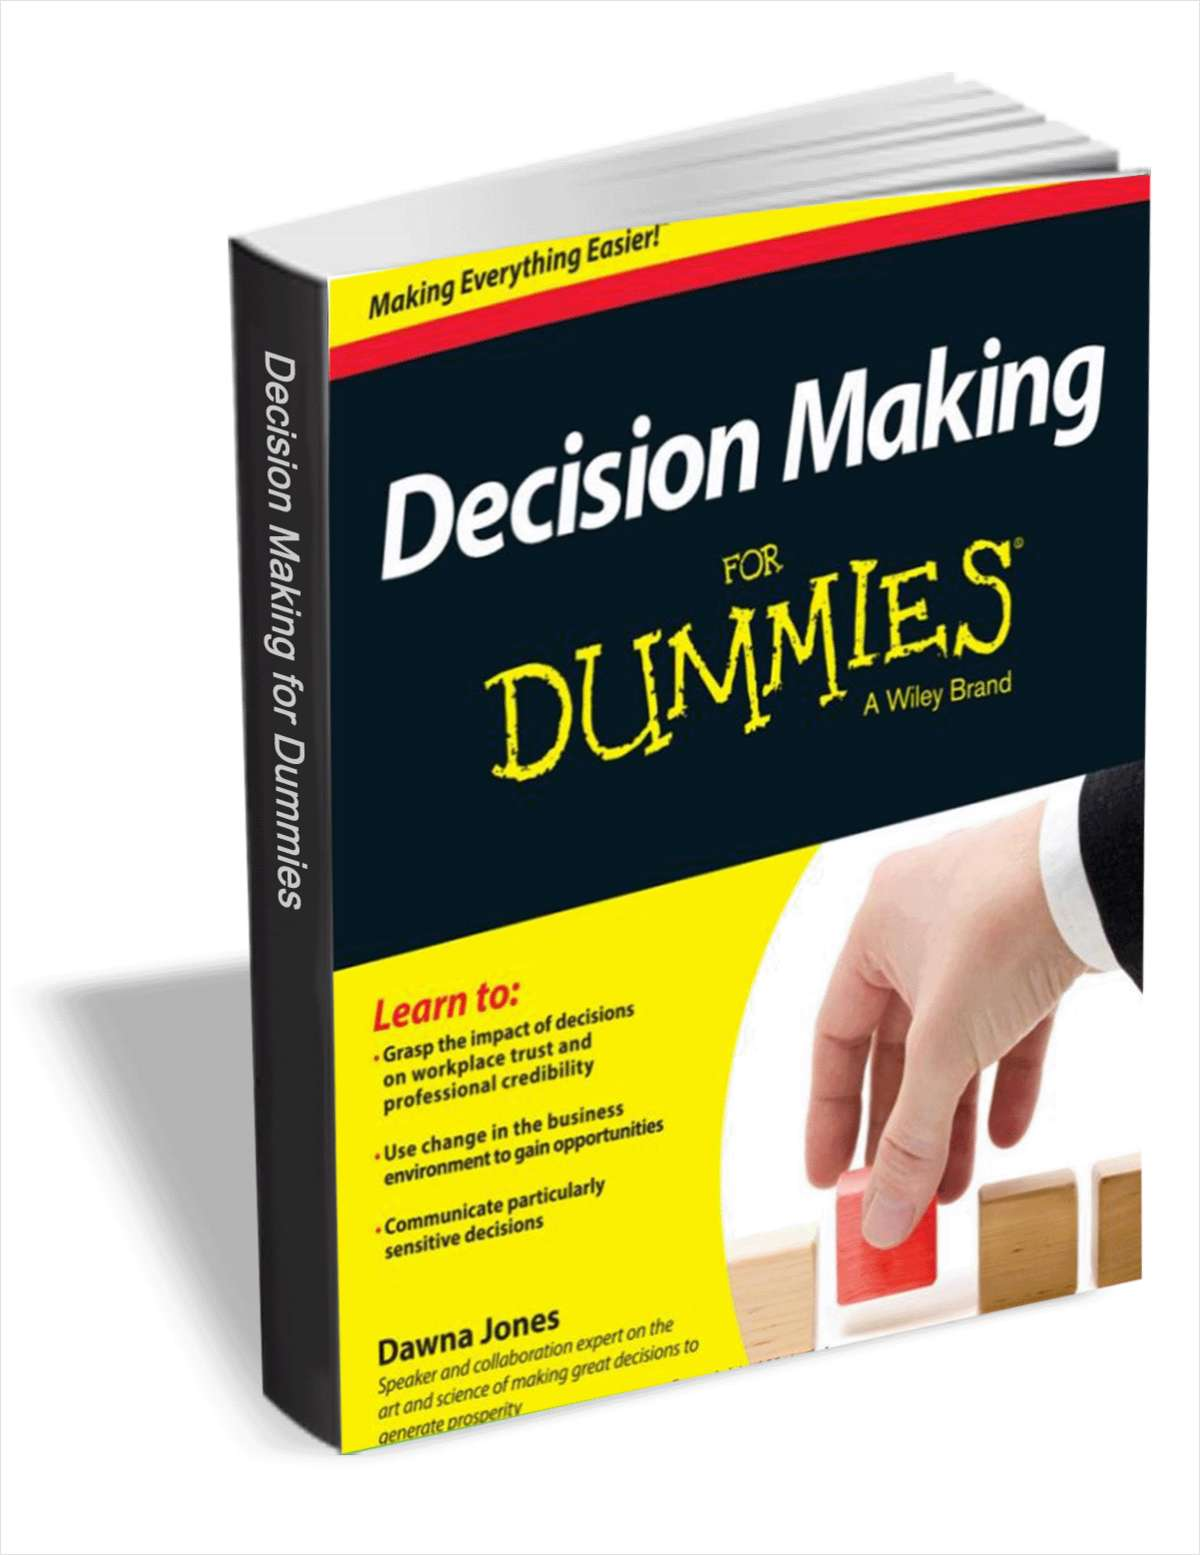 Decision Making For Dummies (FREE for a limited time!) A $17.99 Value